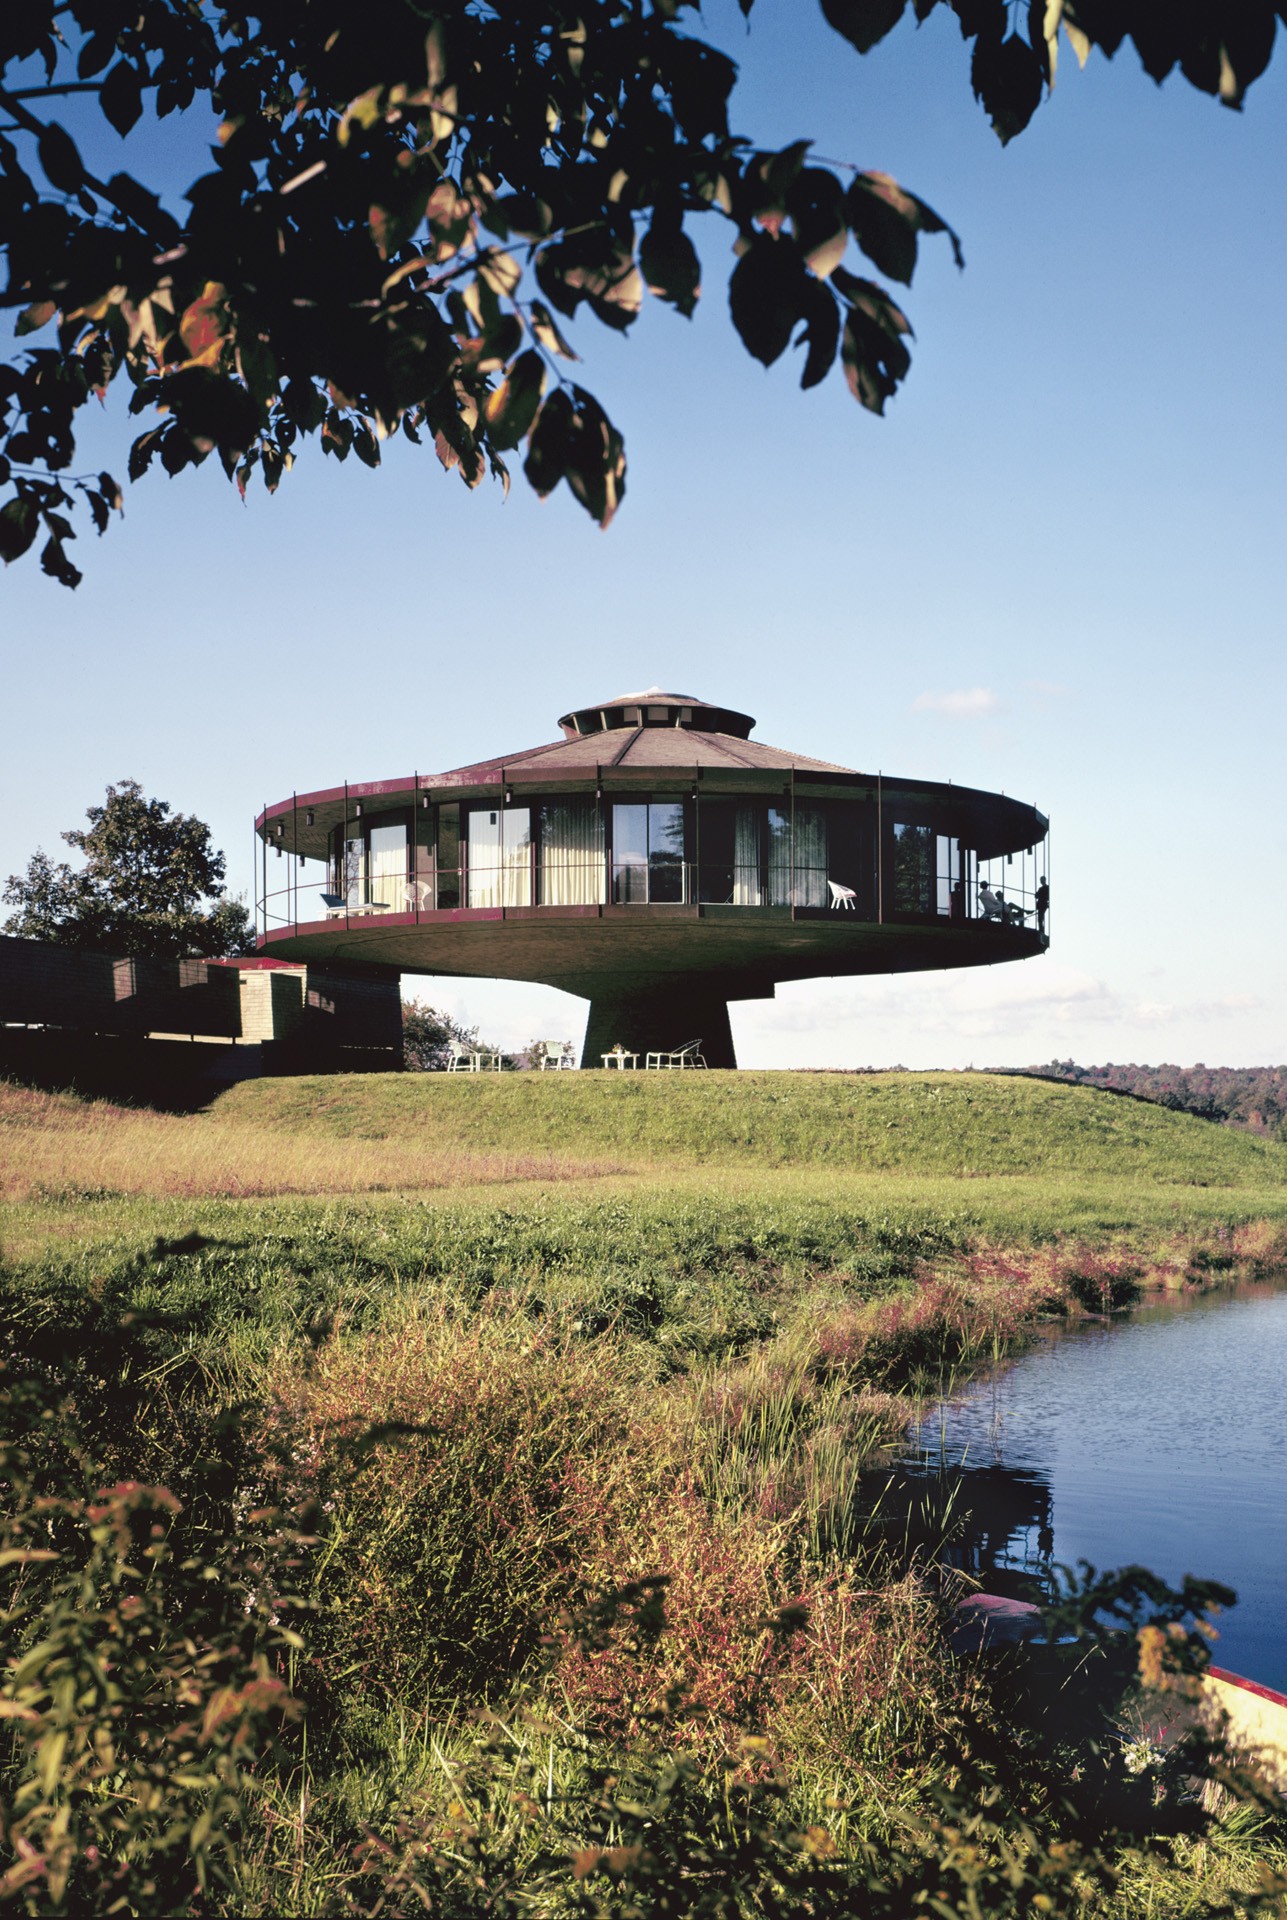 Richard Foster House aka Spaceship House, Location: Wilton CT, Architect: Richard Foster